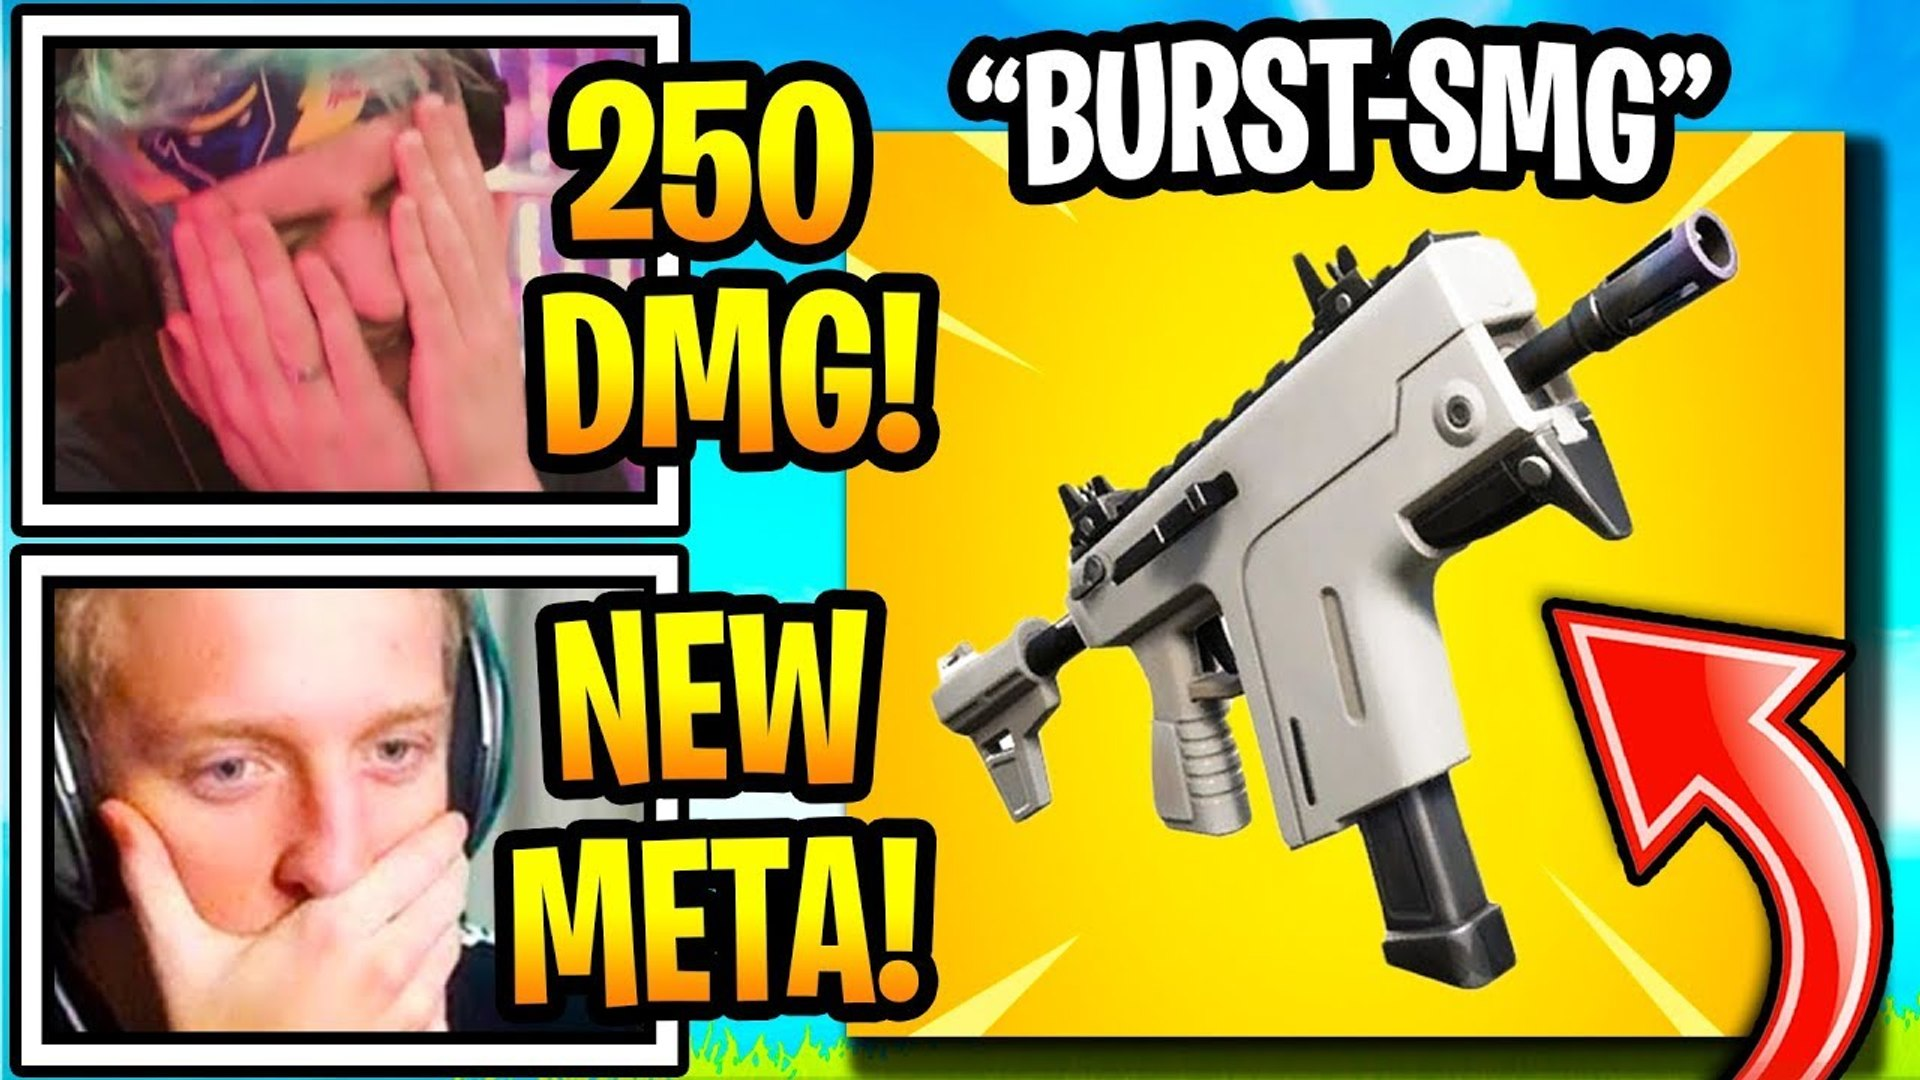 Streamers SHOCKED by the *NEW* BURST SMG (Vector) in Fortnite Battle Royale